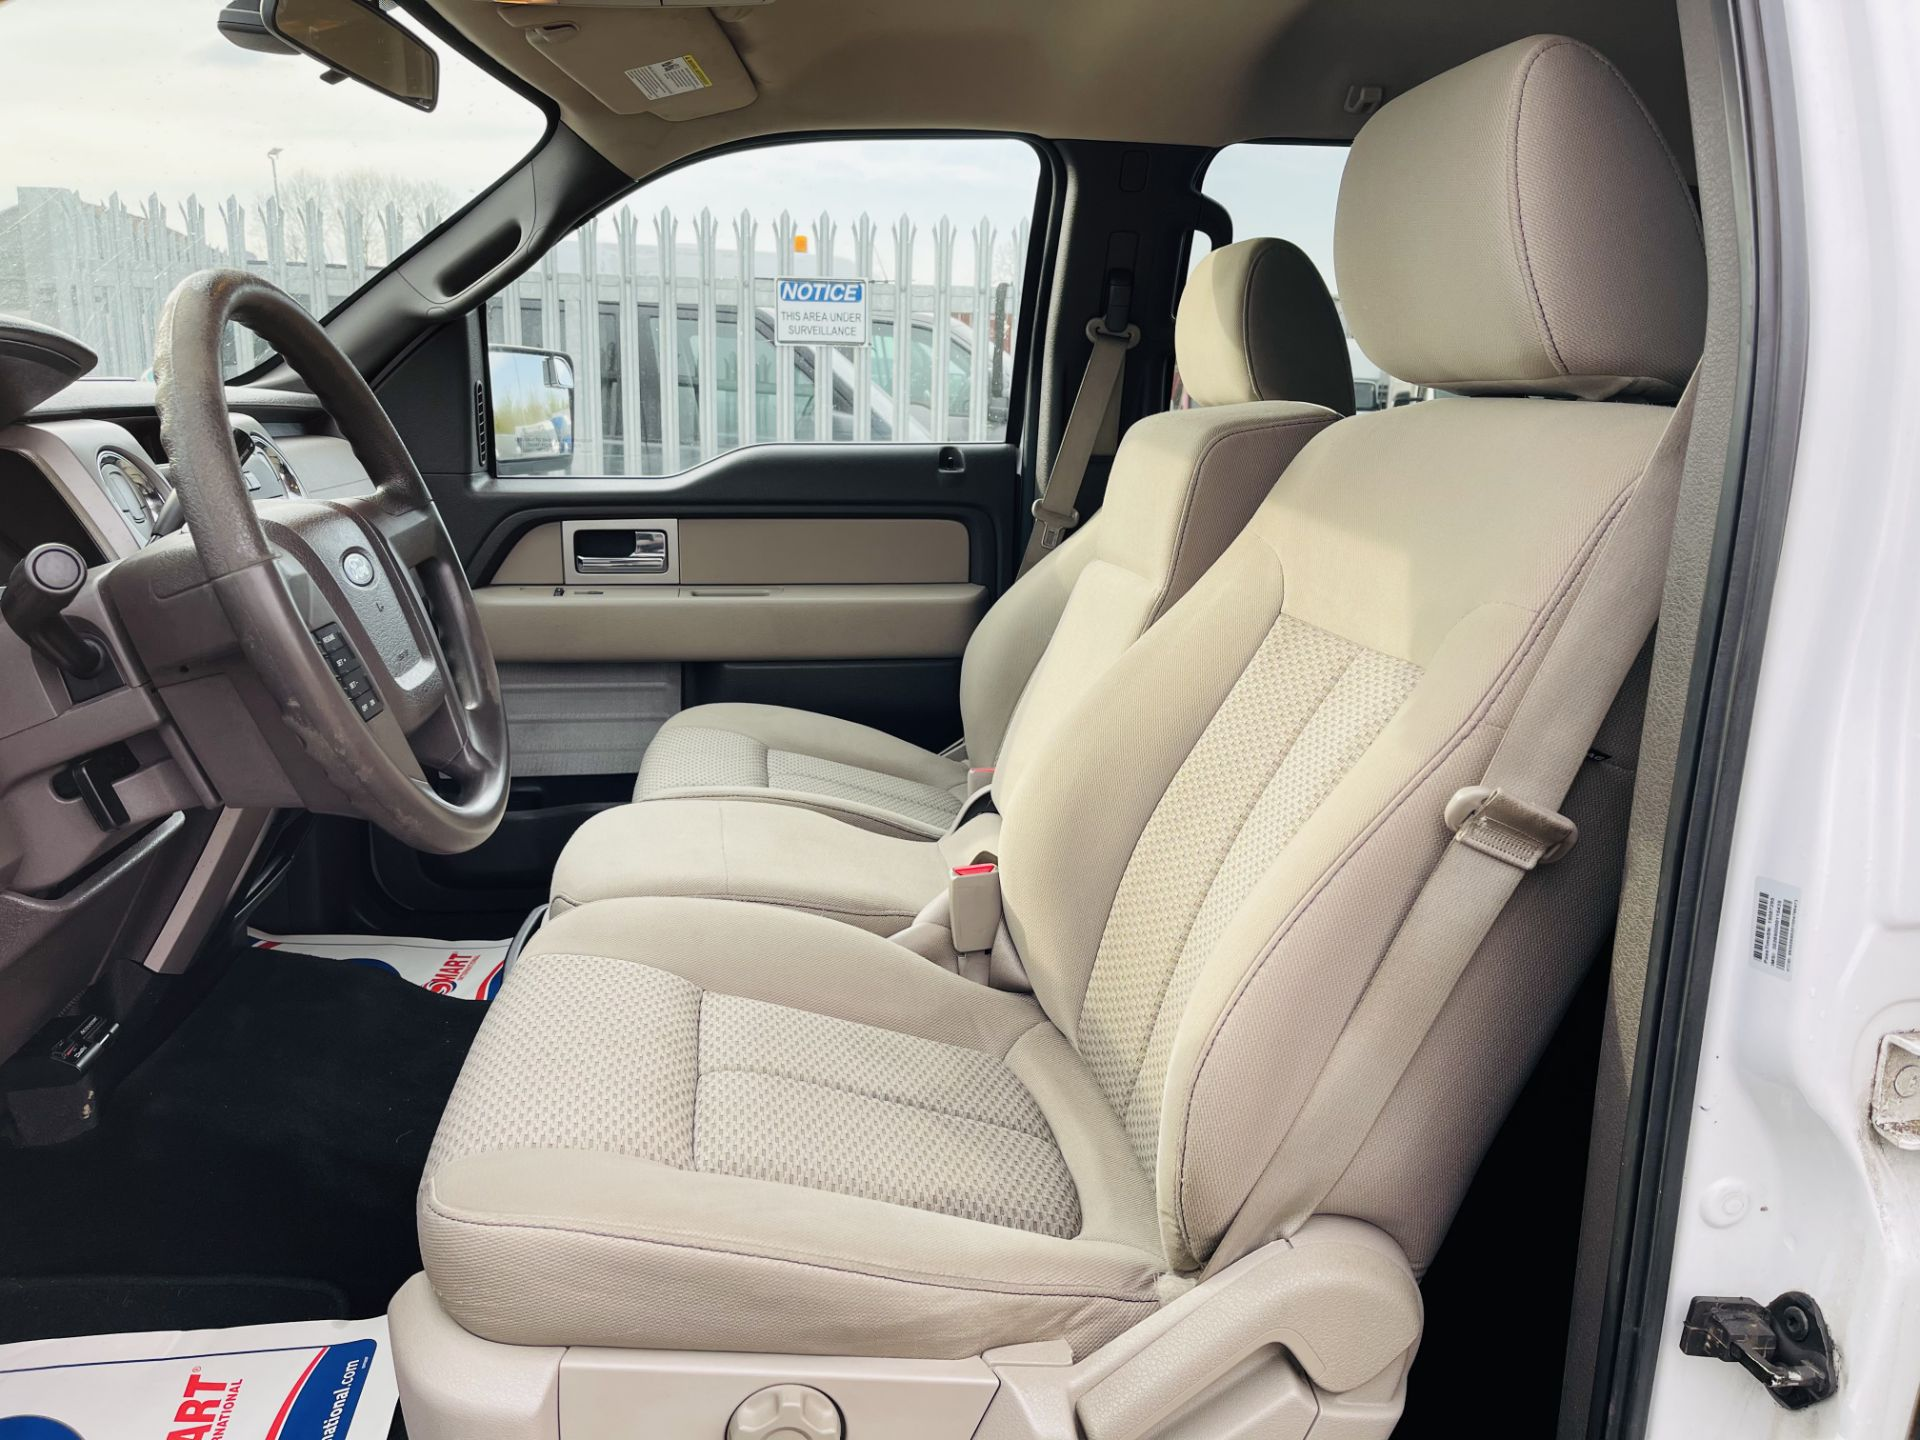 Ford F-150 XLT 4.6L V8 Super-crew 4WD 2010 ' 2010 Year' 6 Seats - Air con - NO RESERVE - Image 7 of 24